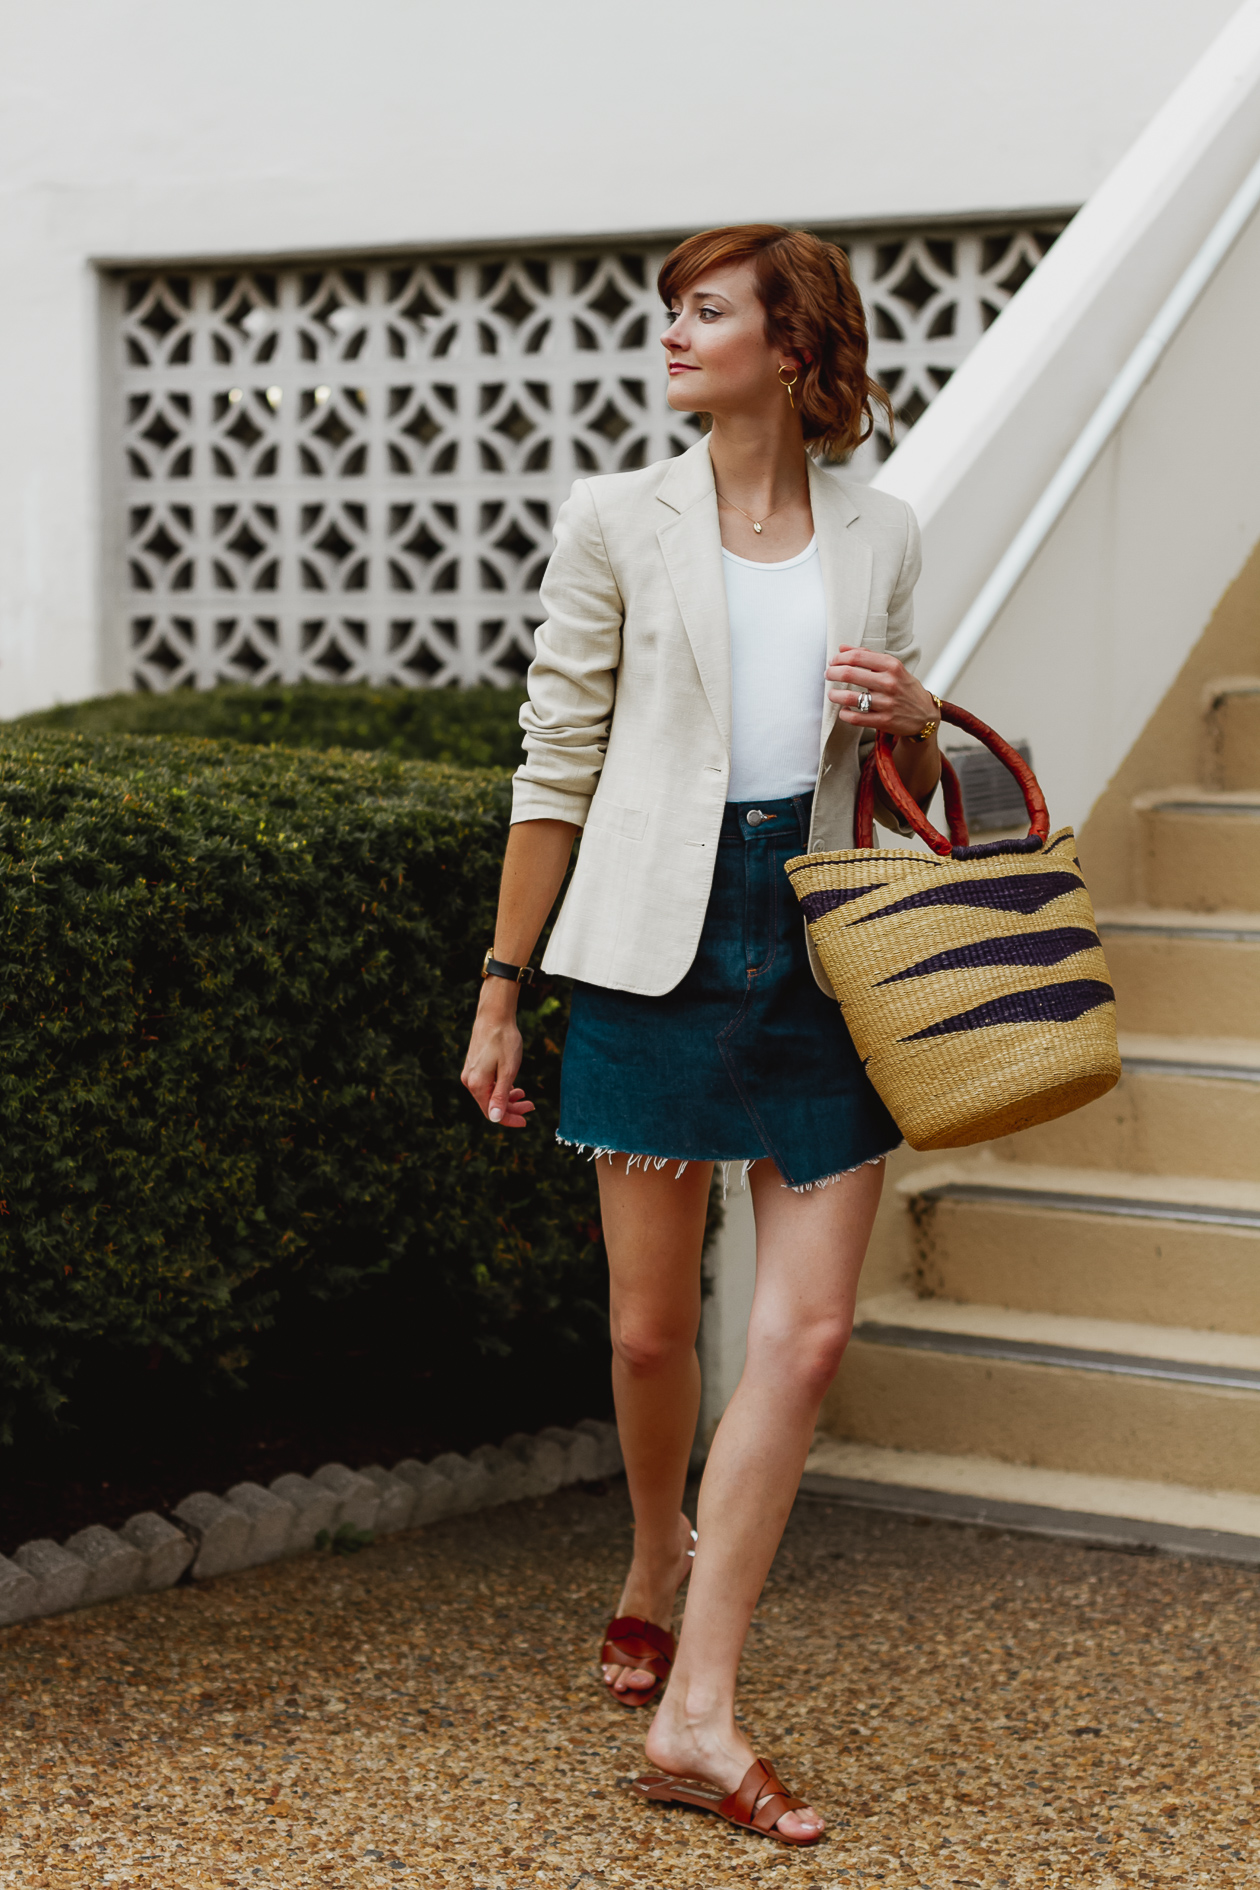 & Other Stories denim skirt and linen blazer